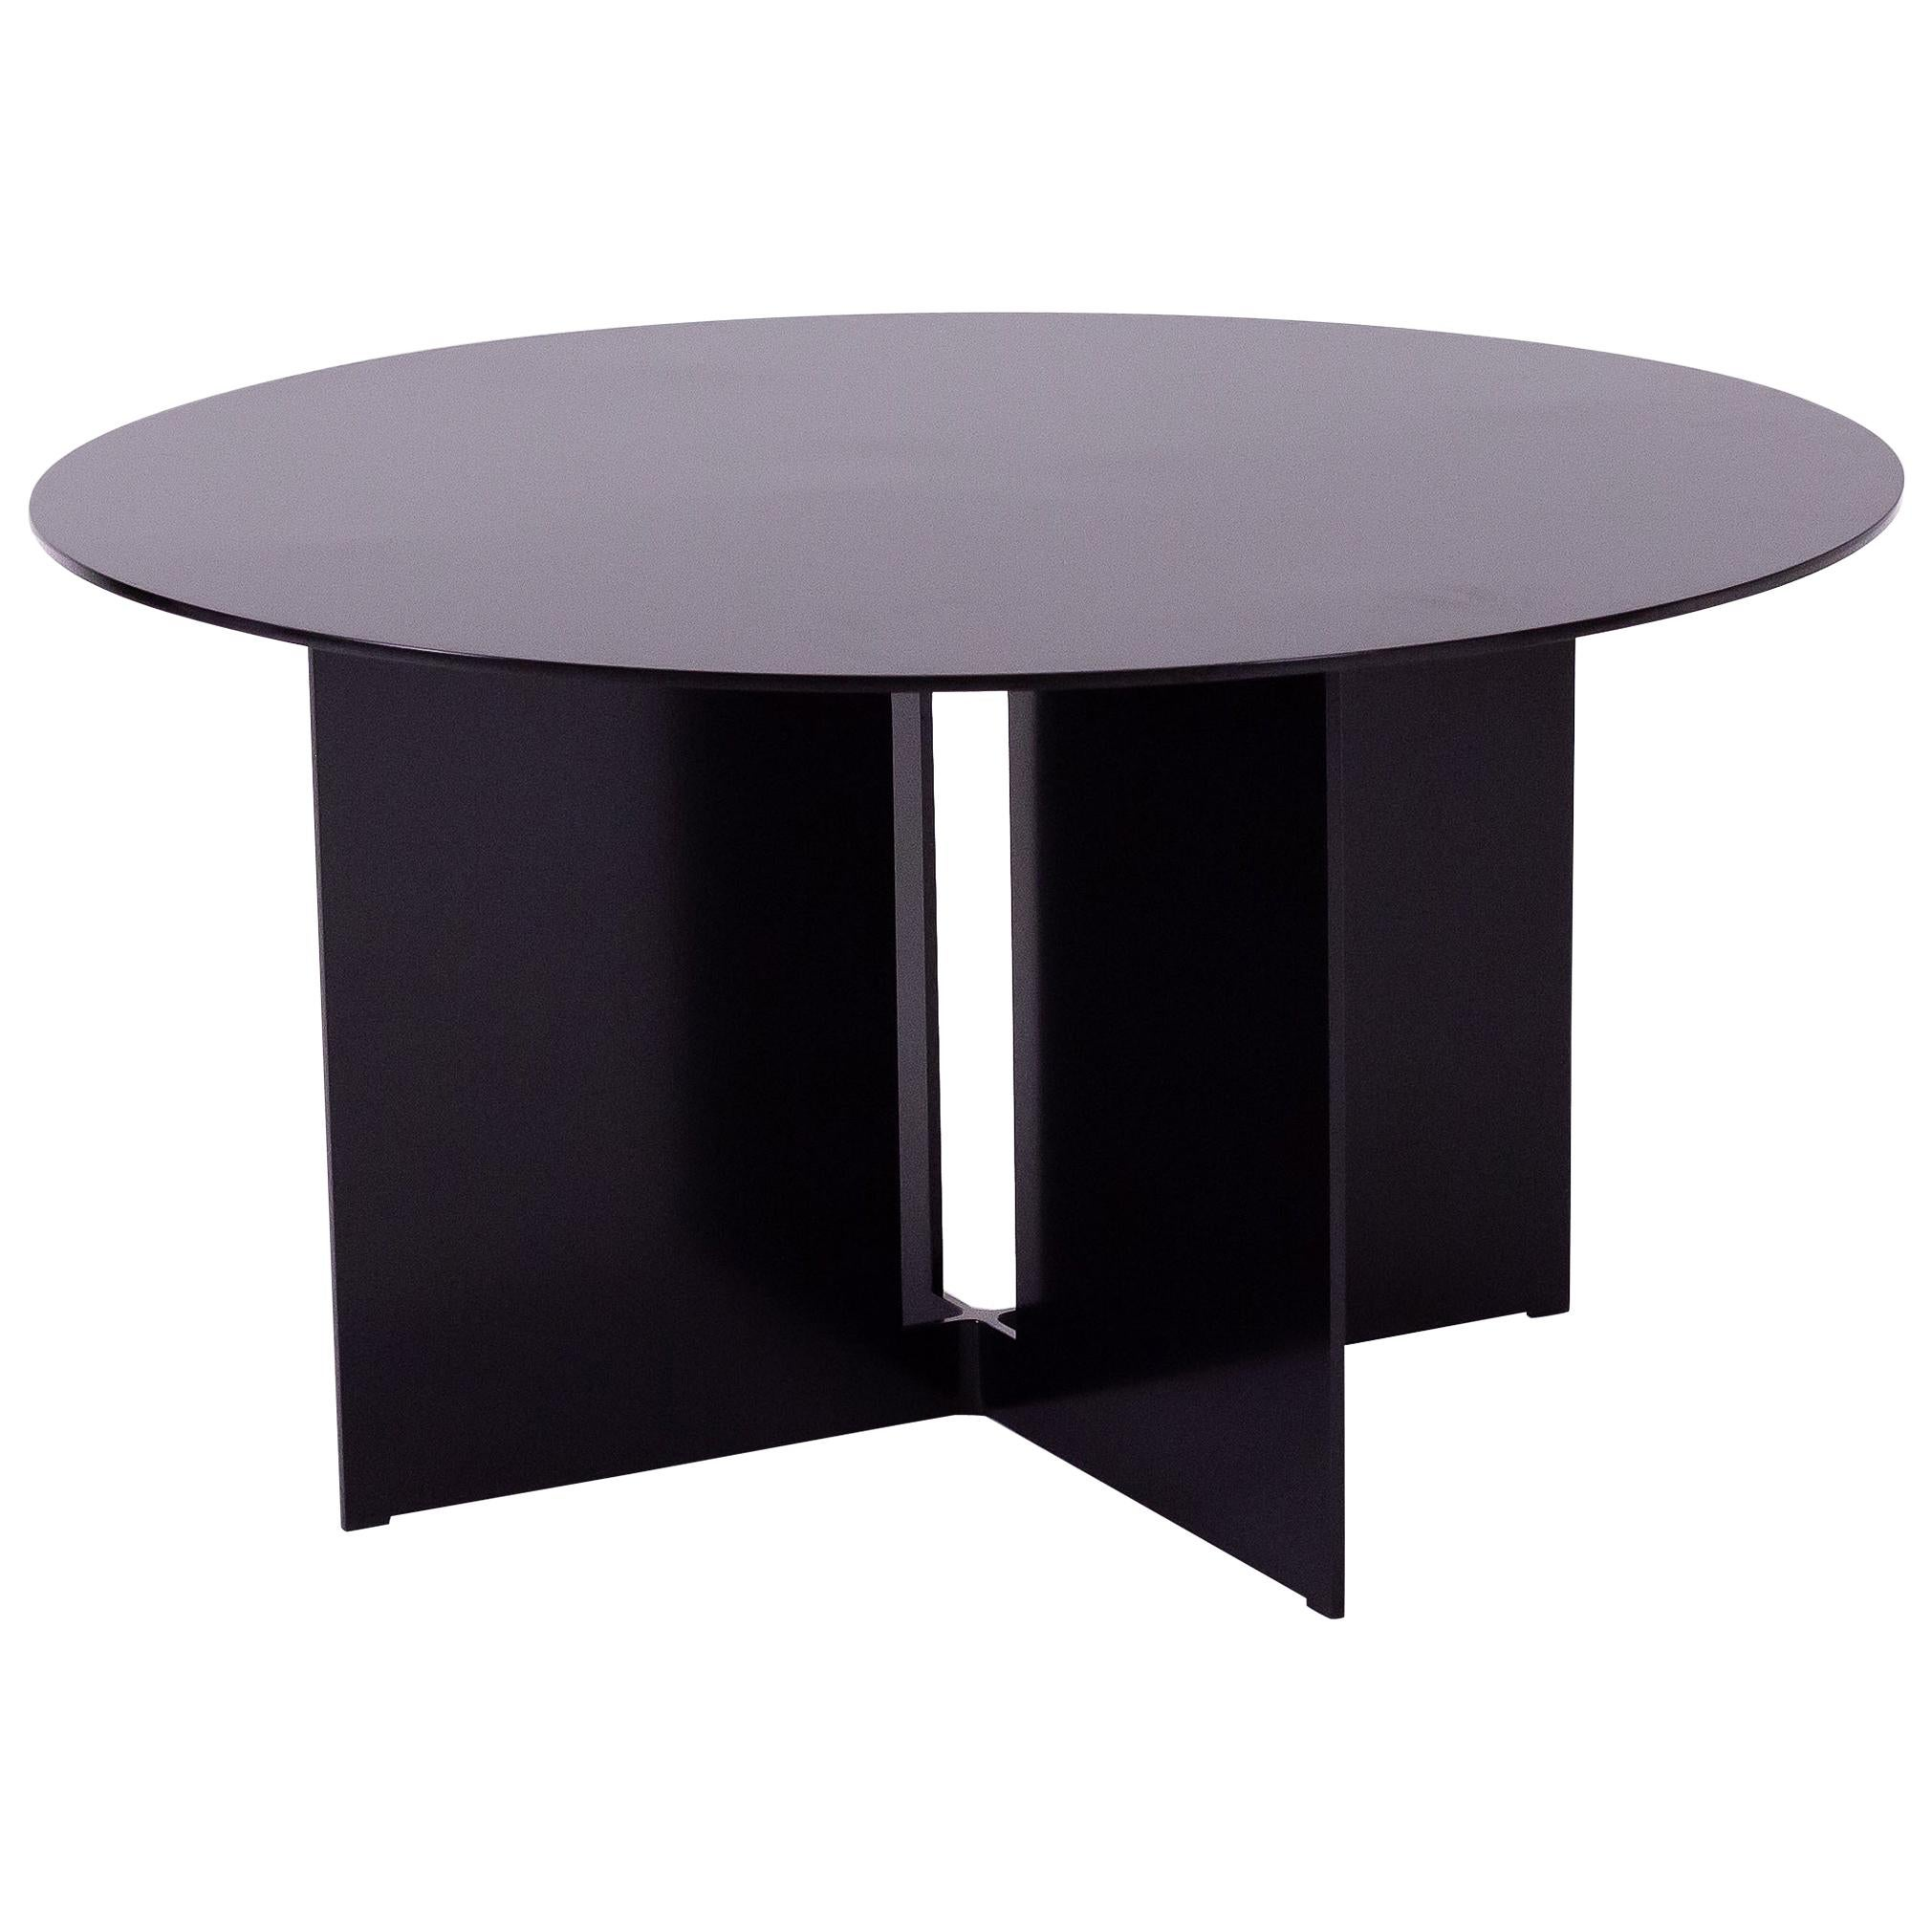 Mers Coffee Table in Aluminum Powdercoat Black